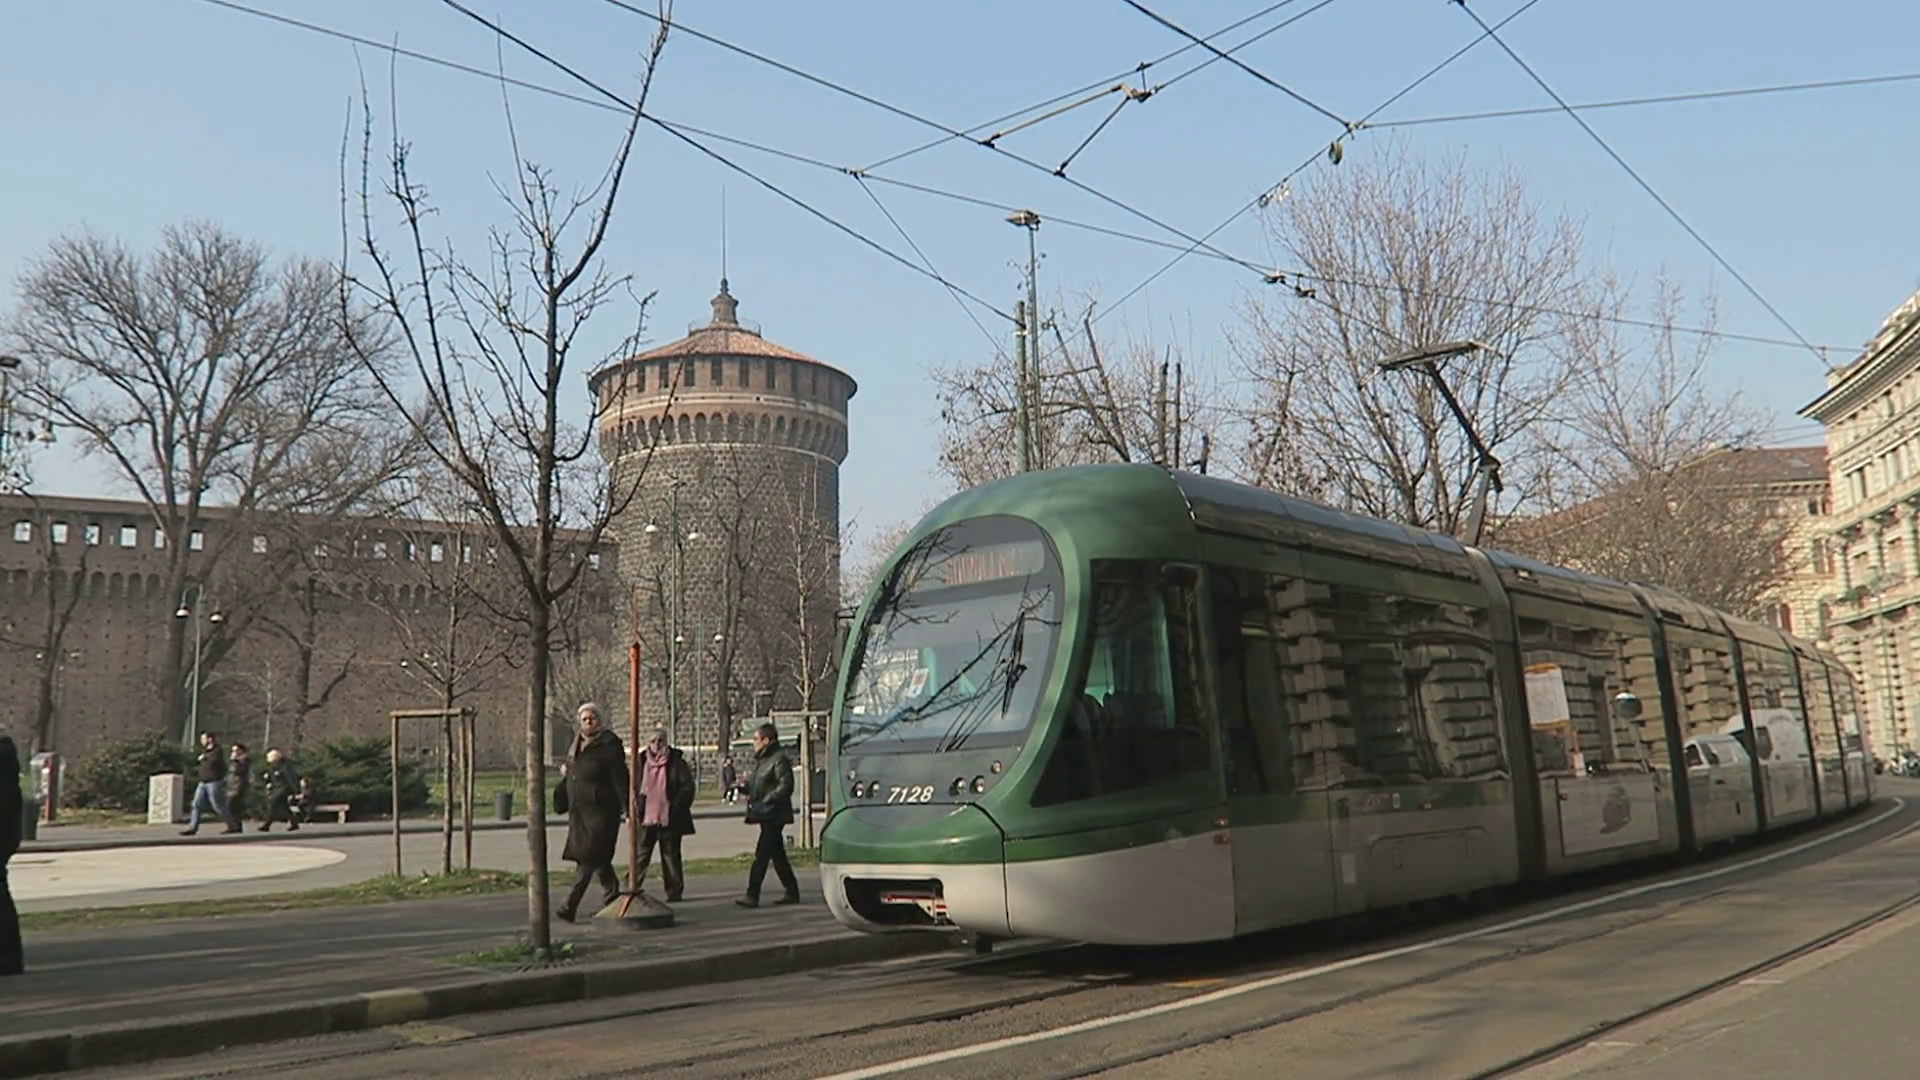 Milan, Italy modern tram on the streets of Milano. Milan tramway ...